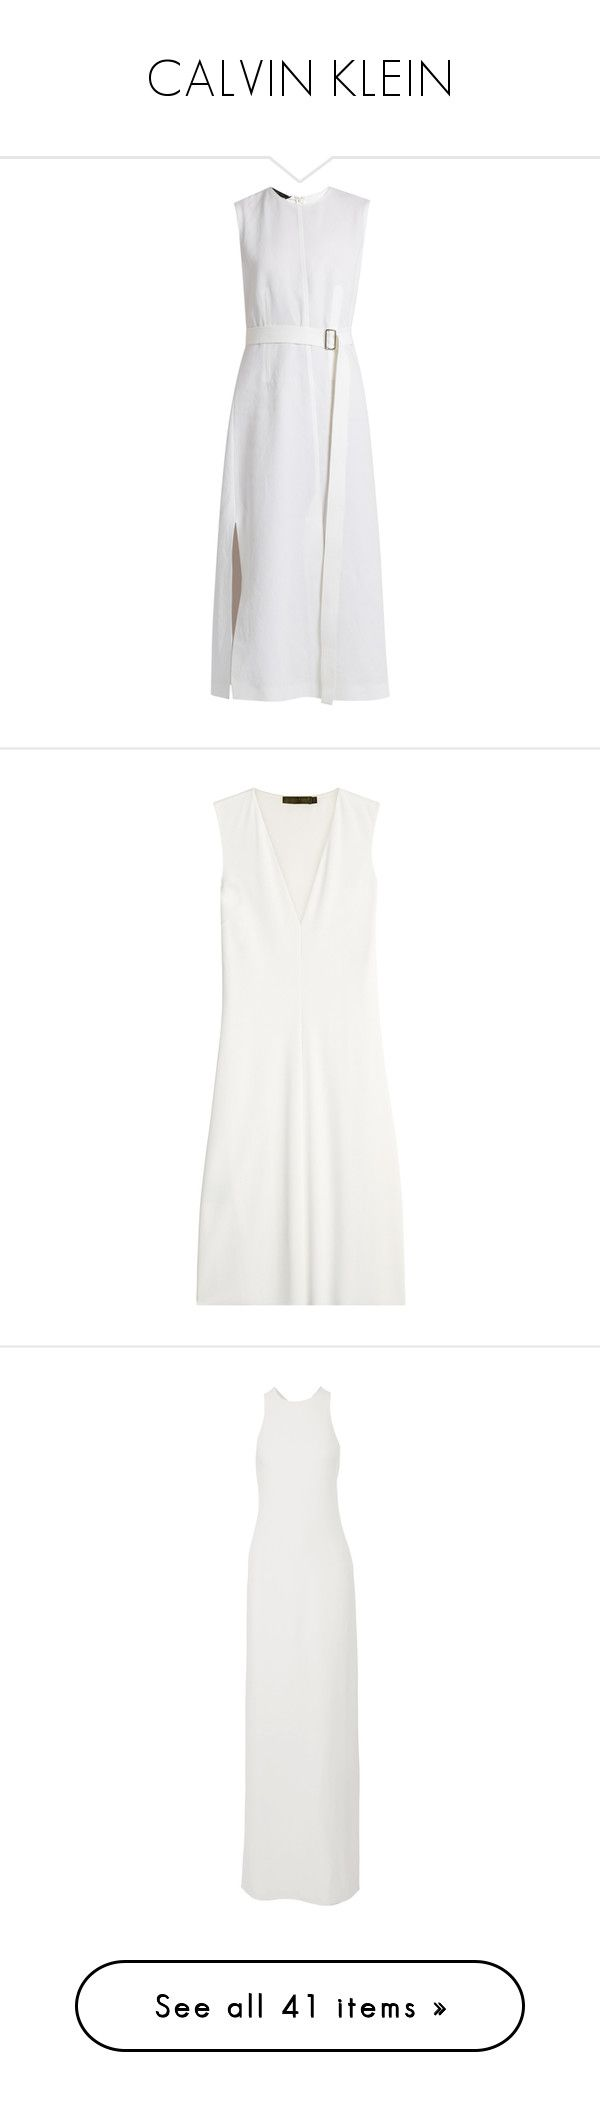 """""""CALVIN KLEIN"""" by mari-sv ❤ liked on Polyvore featuring dresses, white, white dress, panel dress, white day dress, calvin klein collection dresses, cotton dresses, calvin klein collection, v neckline dress and v-neck dresses"""